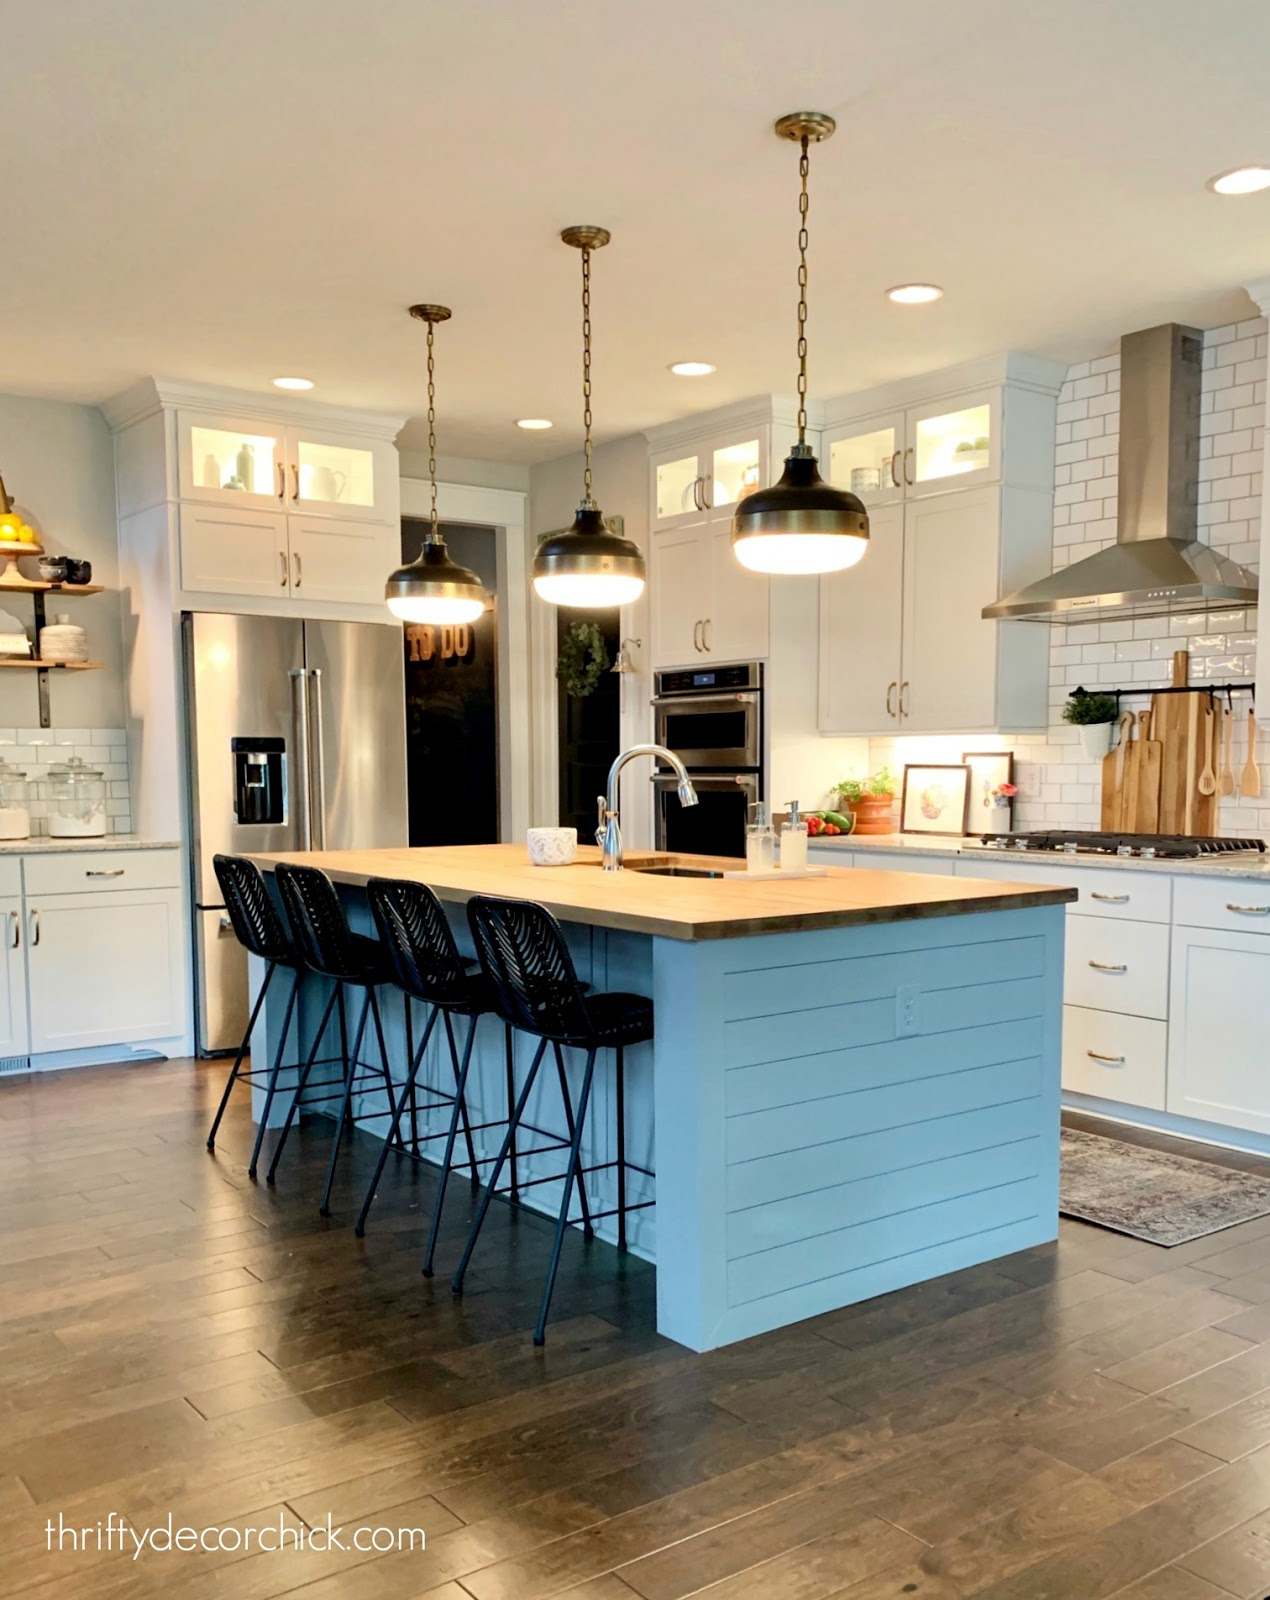 white kitchen black and brass accents